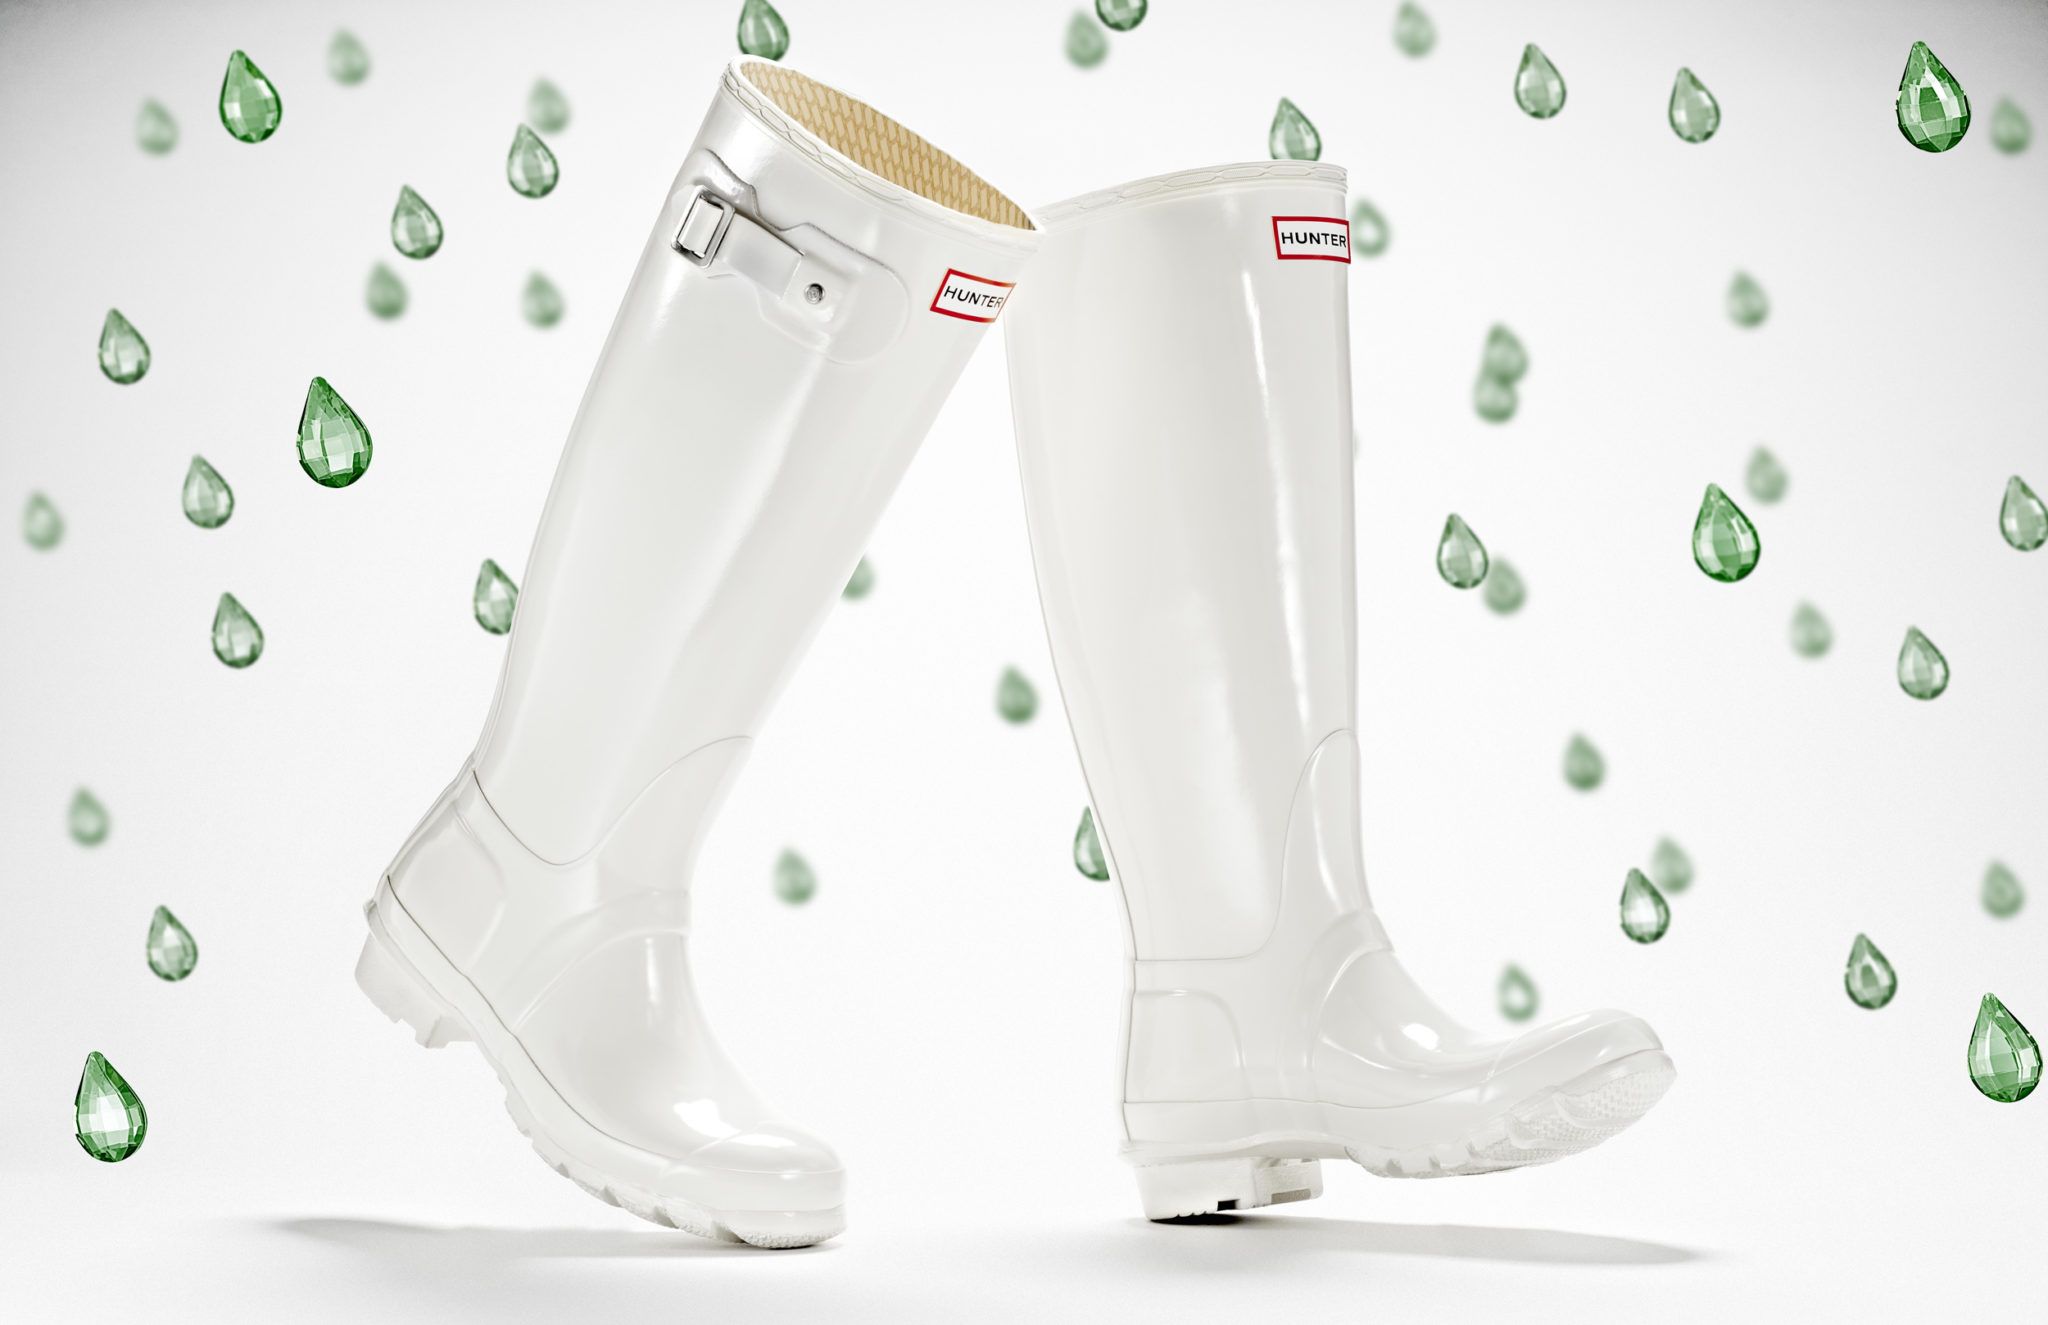 advertising still life photograph of white hunter boots surrounded by green jewel raindrops